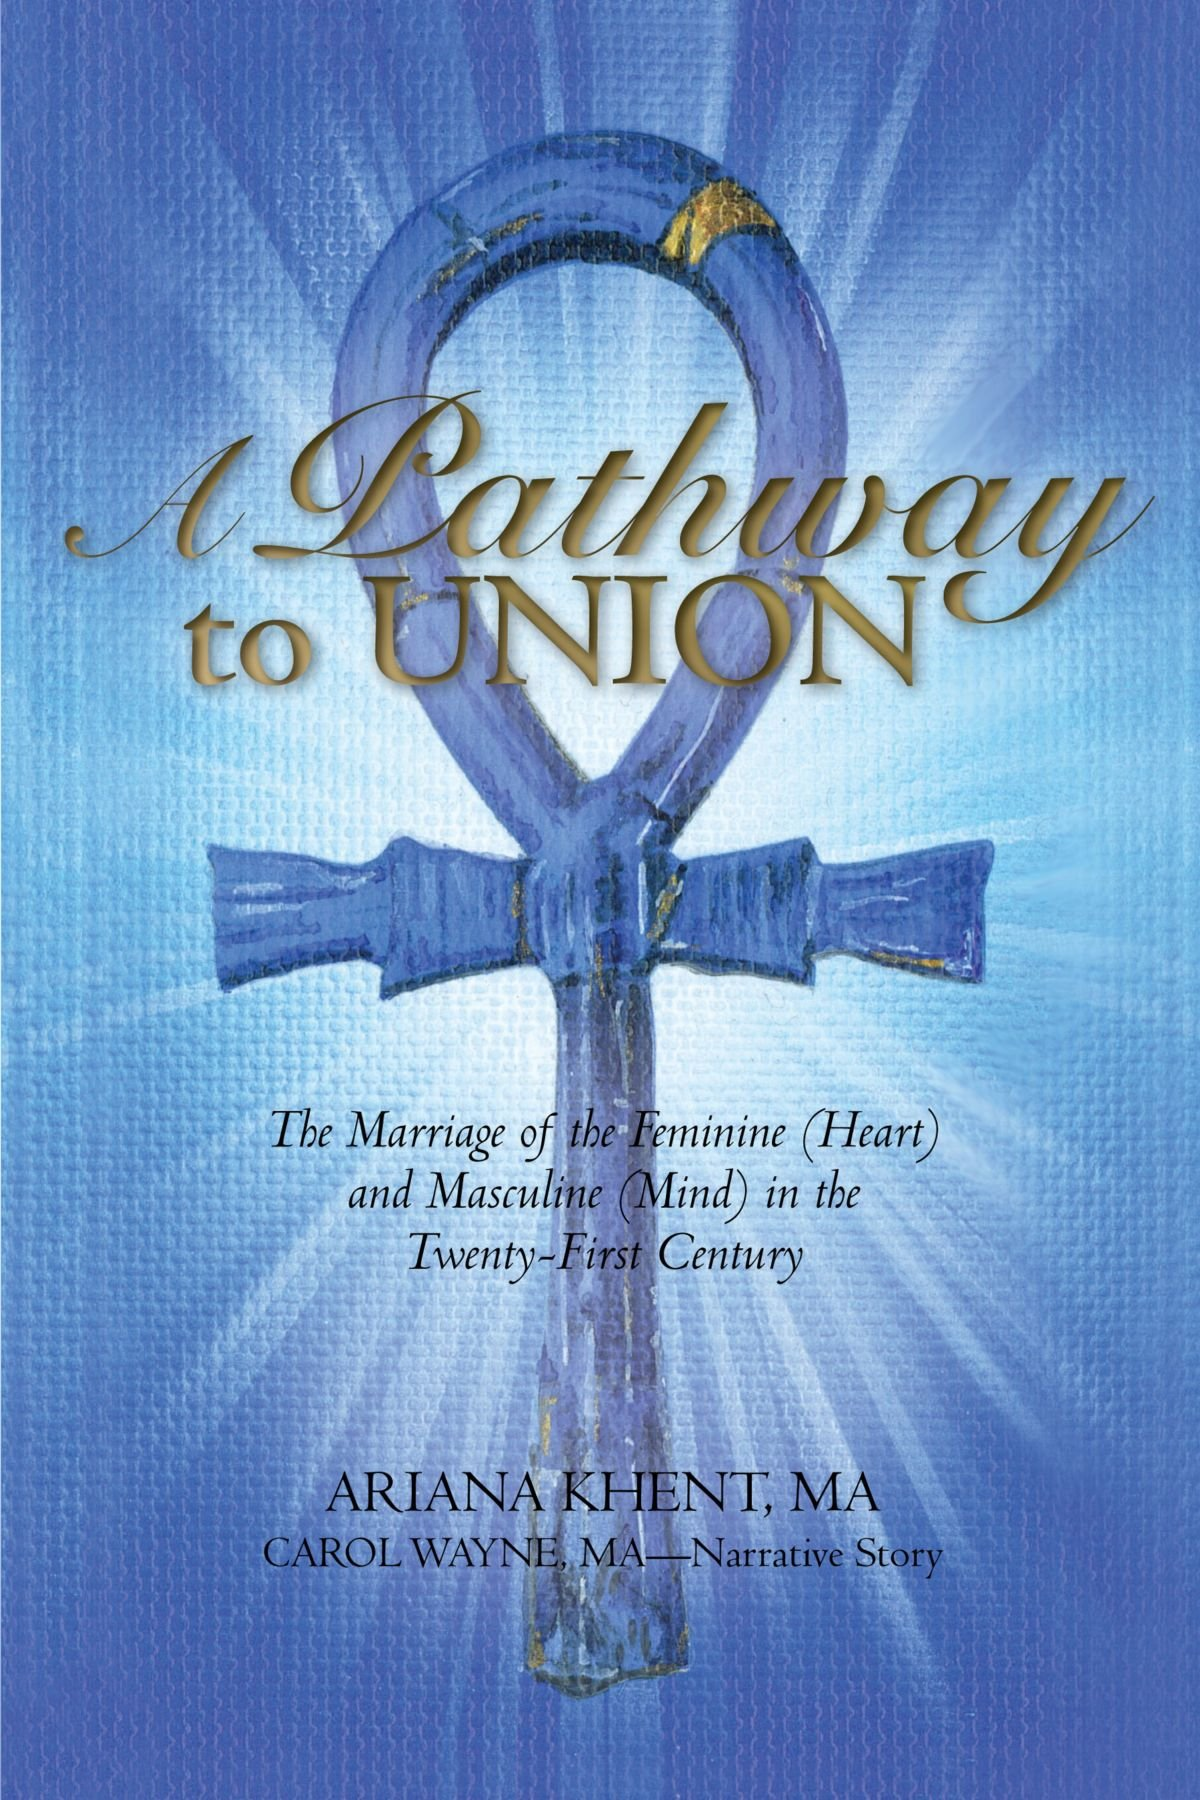 Download A Pathway To Union: The Marriage of the Feminine (Heart) and Masculine (Mind) in the Twenty-First Century. pdf epub